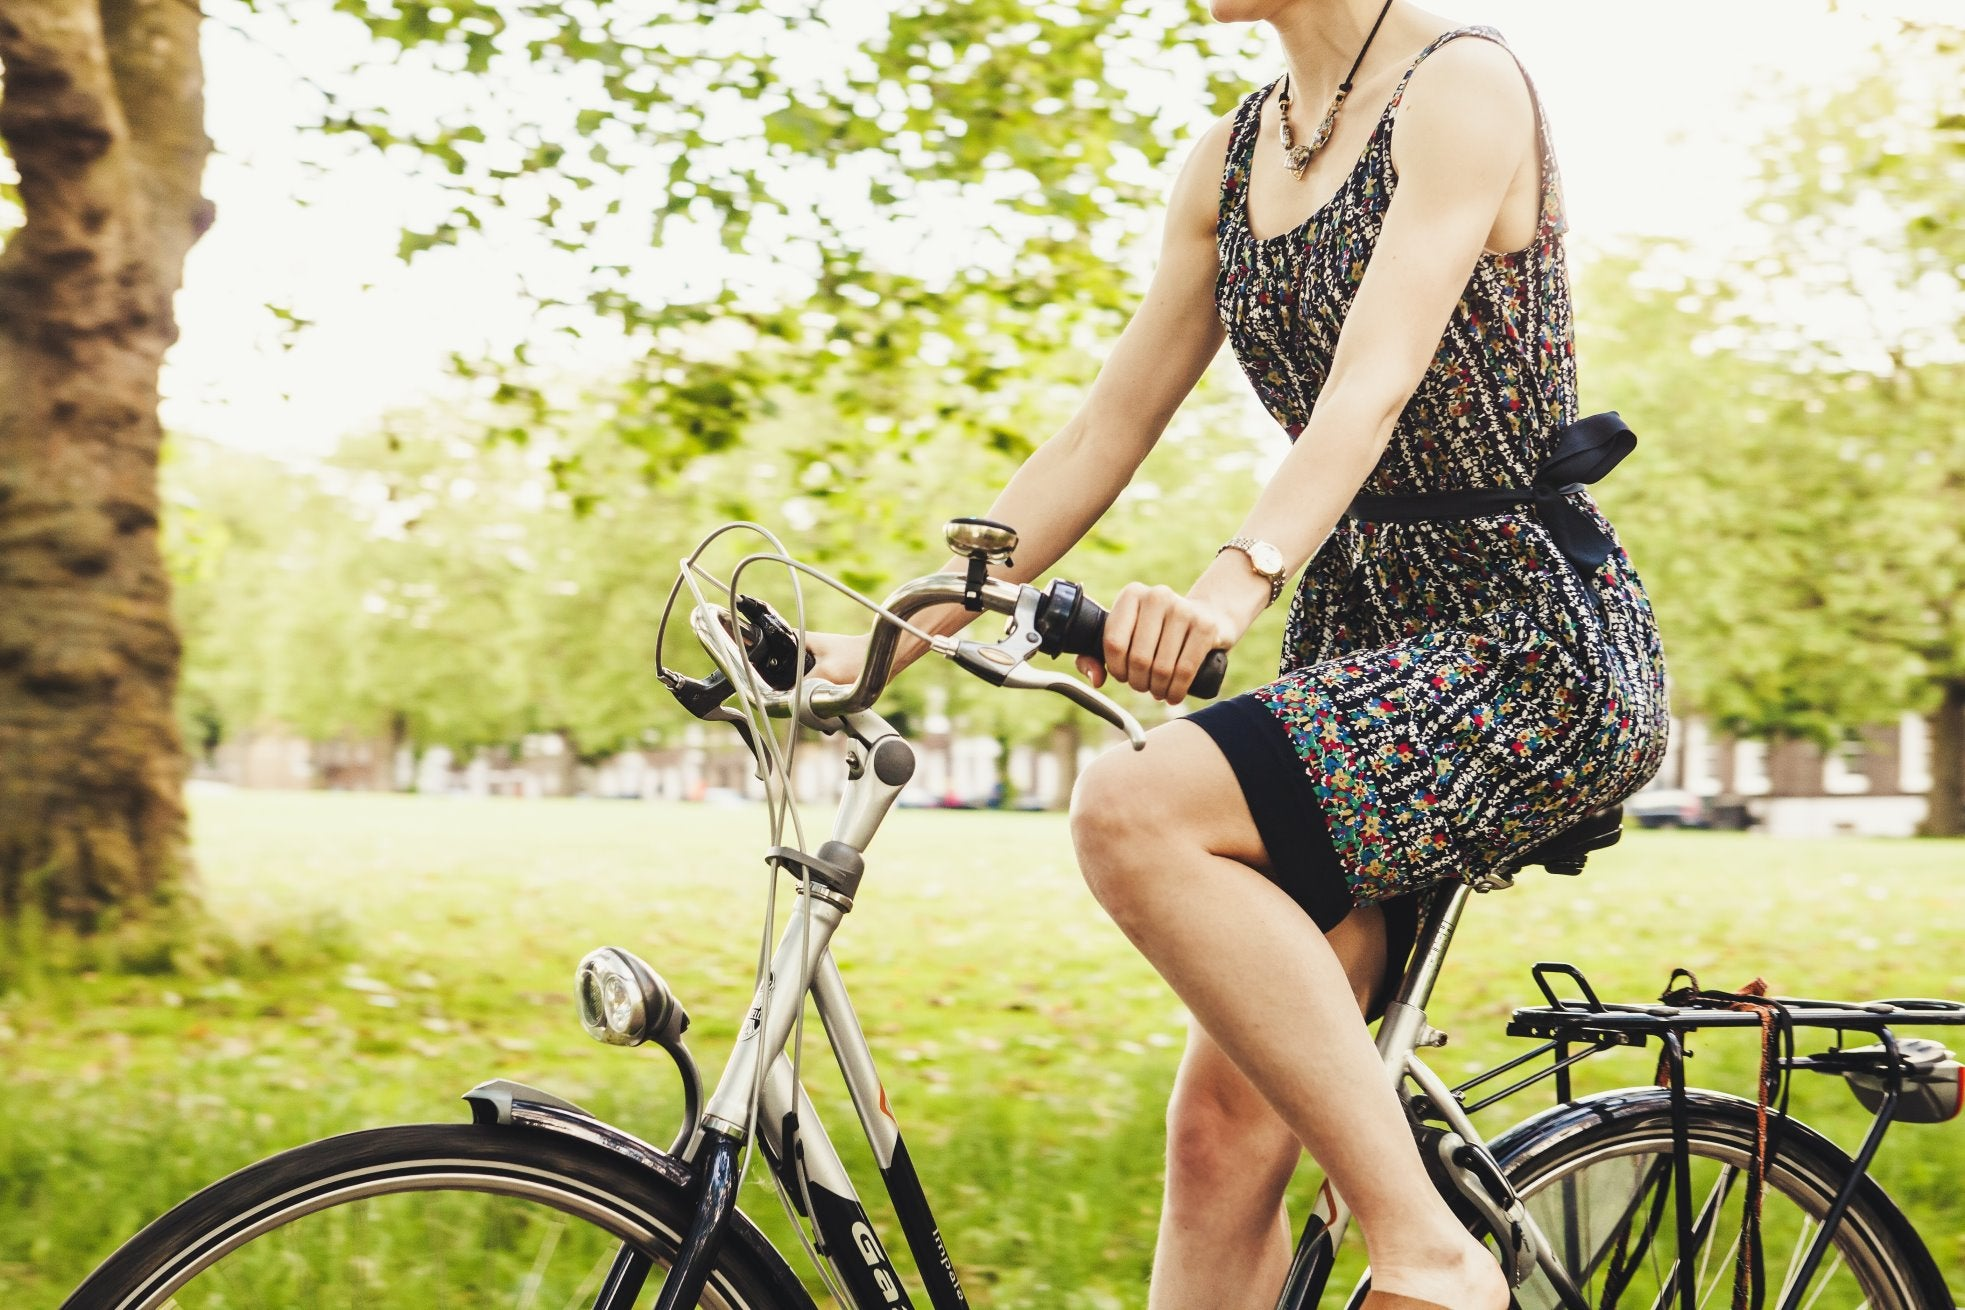 London's Best Bike Ride Locations